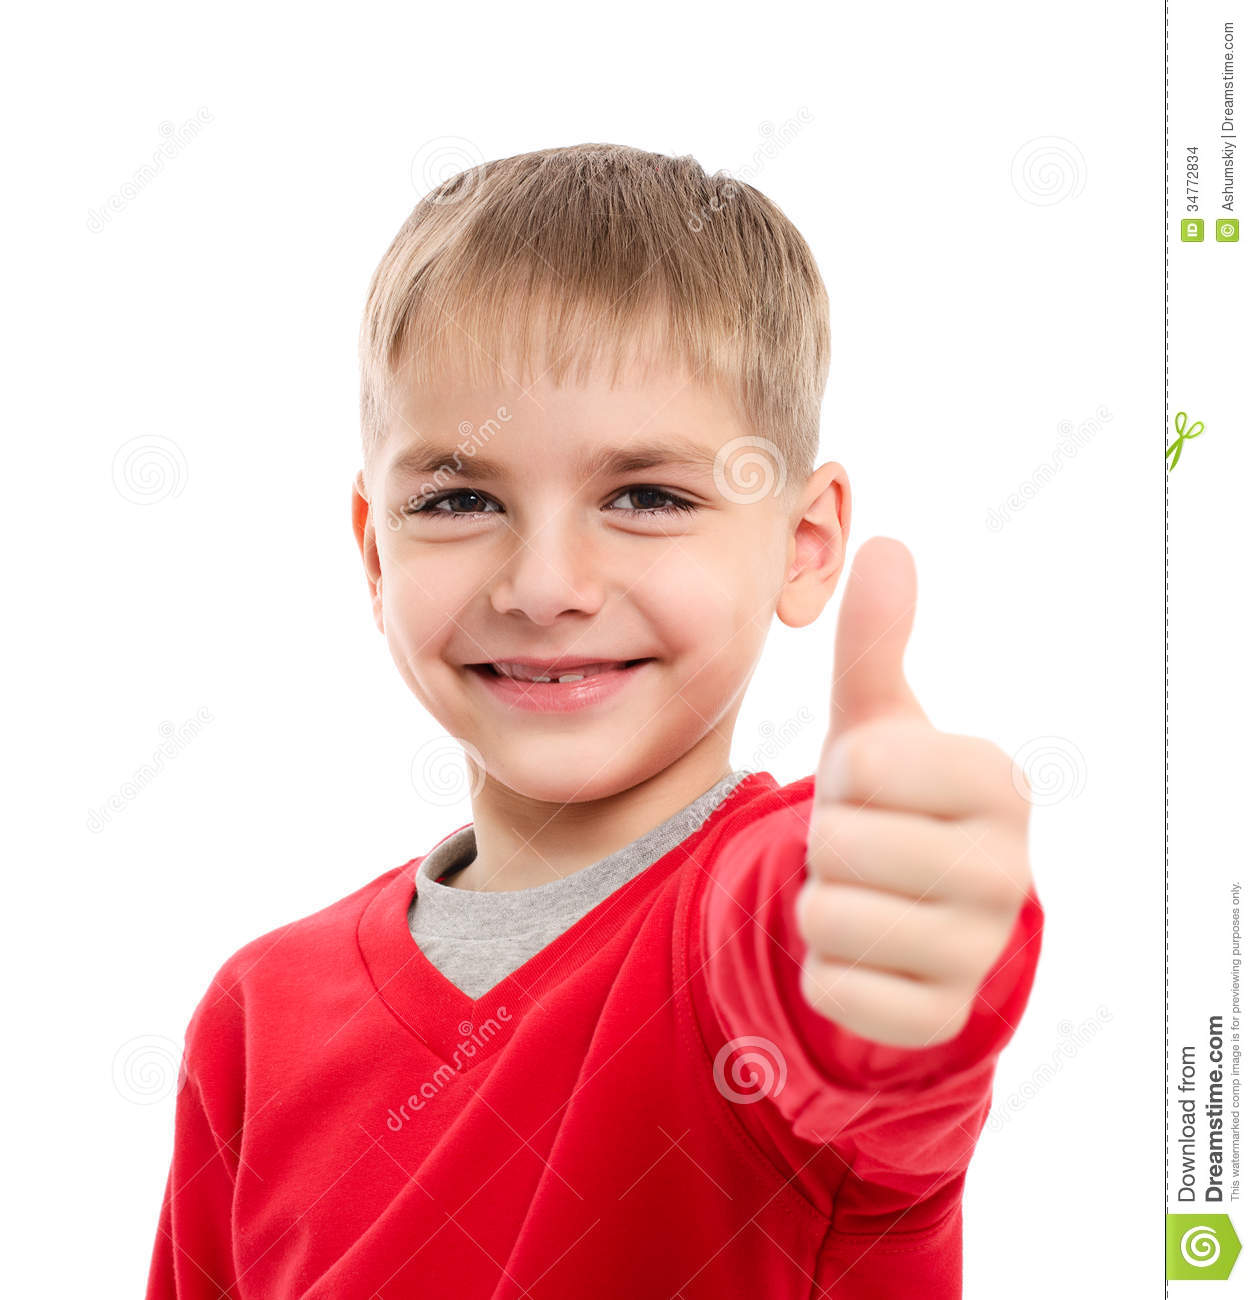 Portrait Of Happy Boy Showing Thumbs Up Gesture Stock